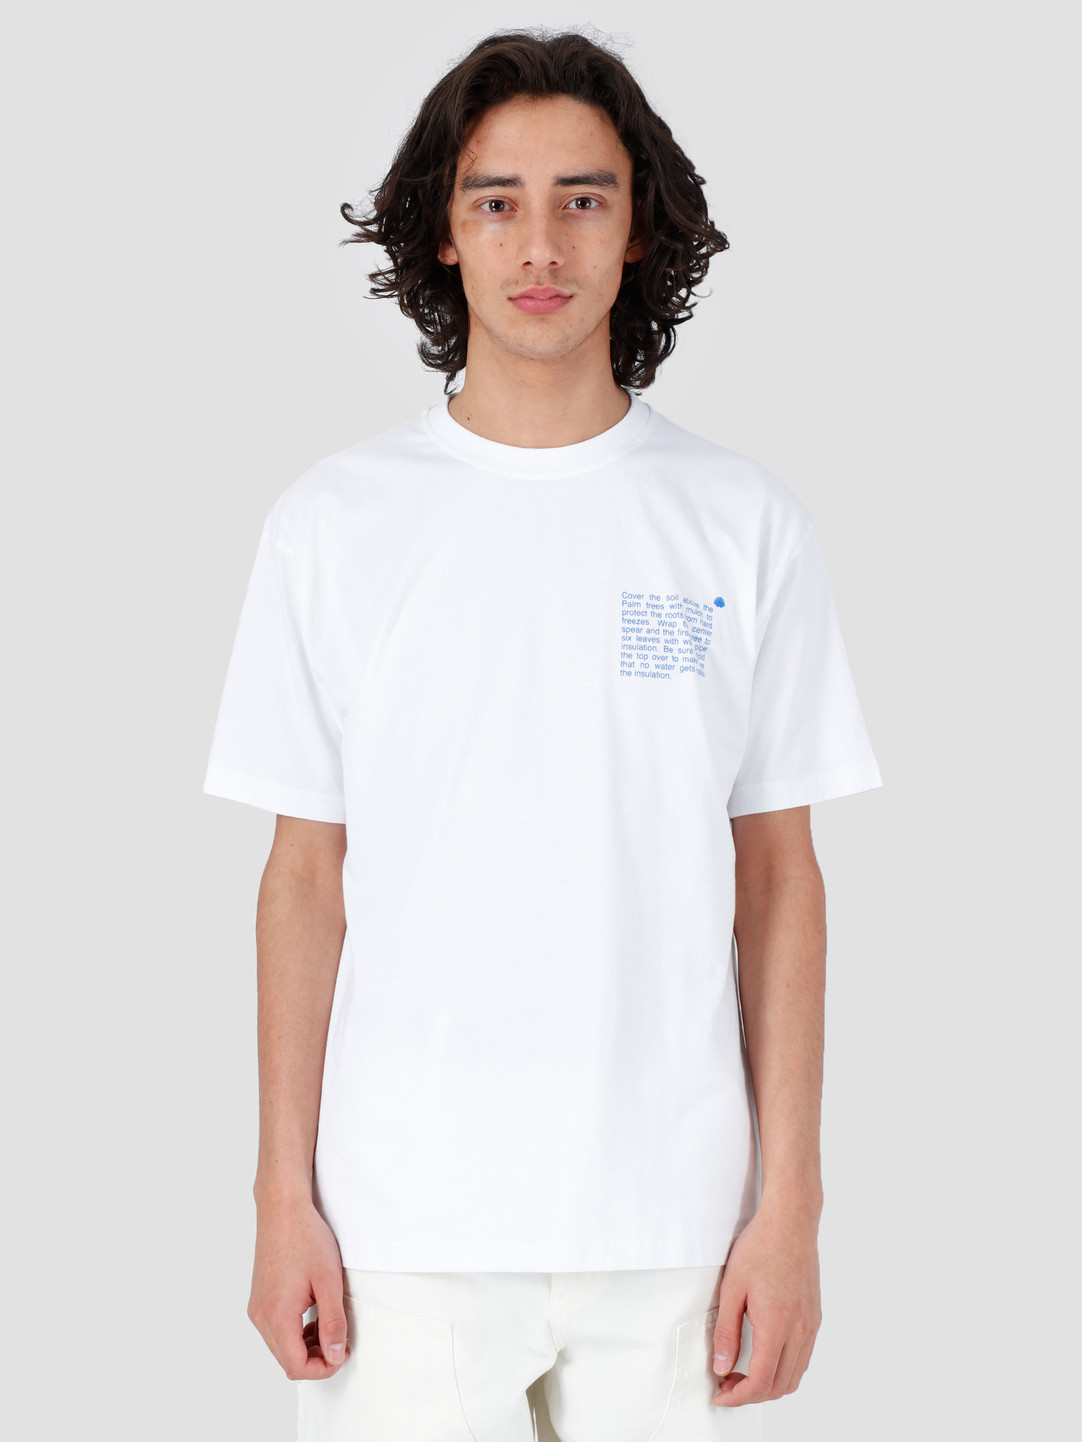 New Amsterdam Surf association New Amsterdam Surf association Cold Palm T-Shirt White 2018001